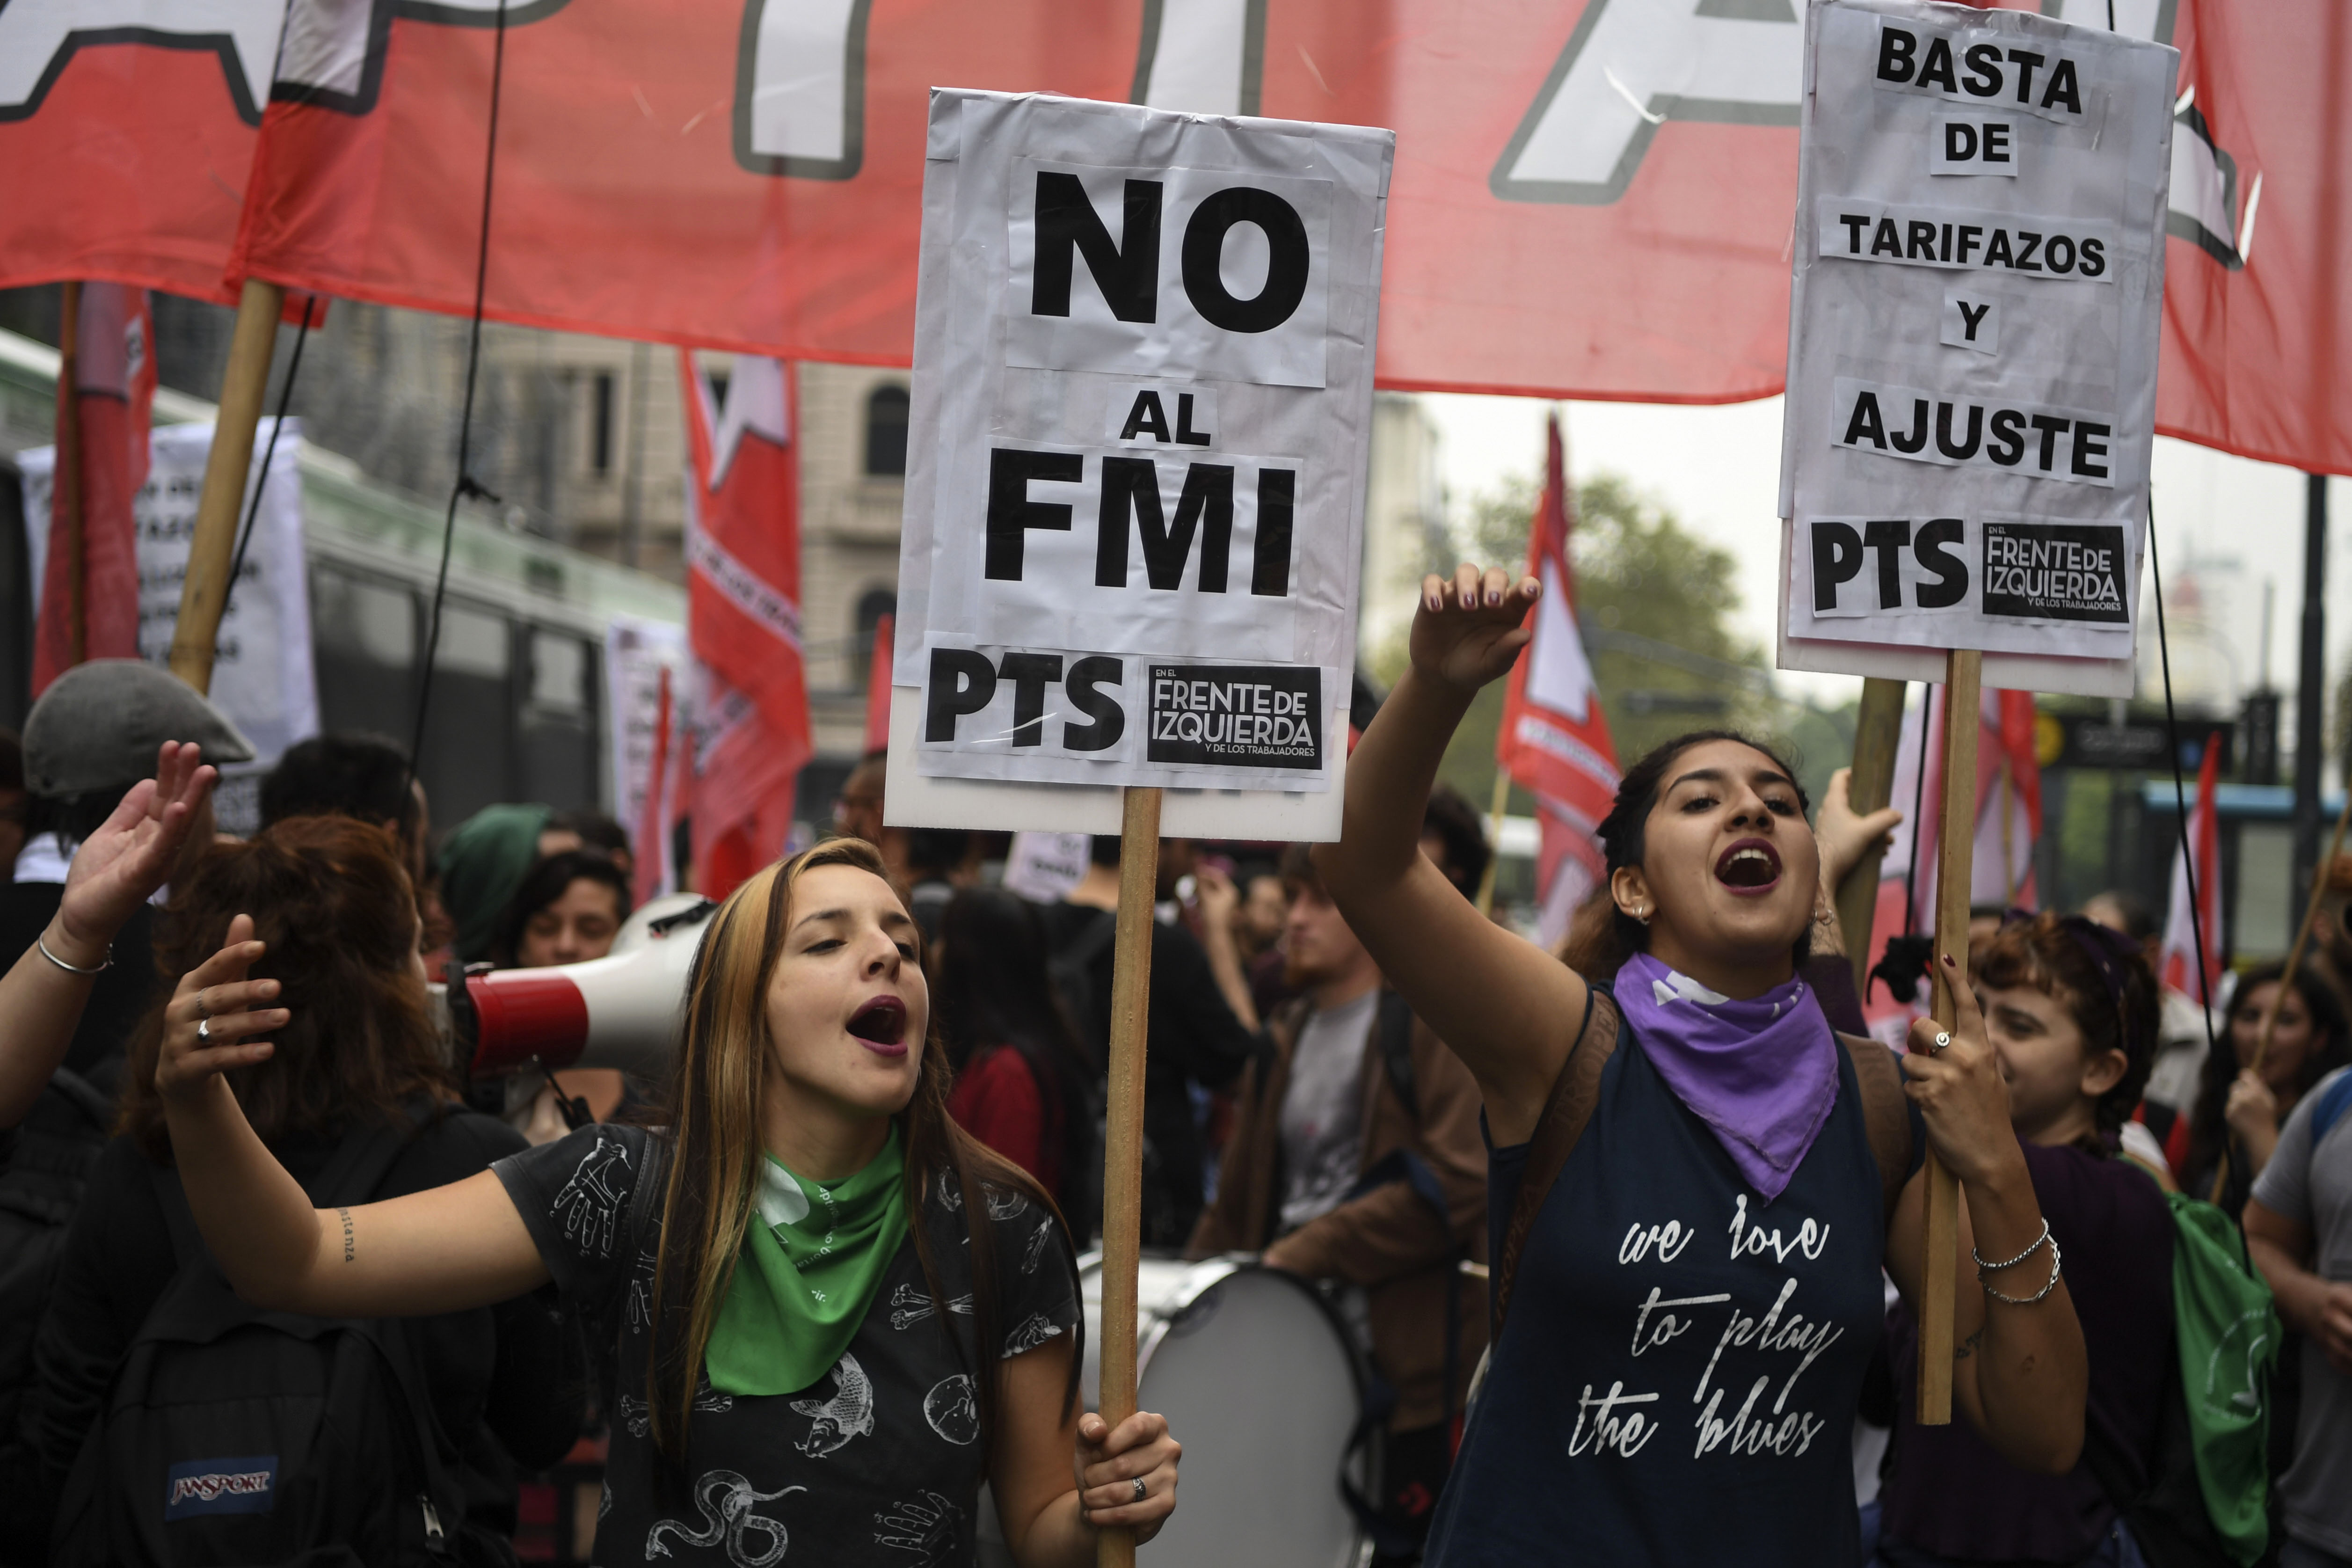 Members of leftist organizations demonstrate outside the National Congress against the government's negotiations with the IMF while legislators debate a bill to put a stop on public services taxes raising in Buenos Aires, on May 09, 2018. - Argentina opened talks with the International Monetary Fund on Tuesday to seek a financial aid package, 17 years after the country defaulted on its debt and 12 years after cutting ties with the fund. (Photo by EITAN ABRAMOVICH / AFP)        (Photo credit should read EITAN ABRAMOVICH/AFP/Getty Images)